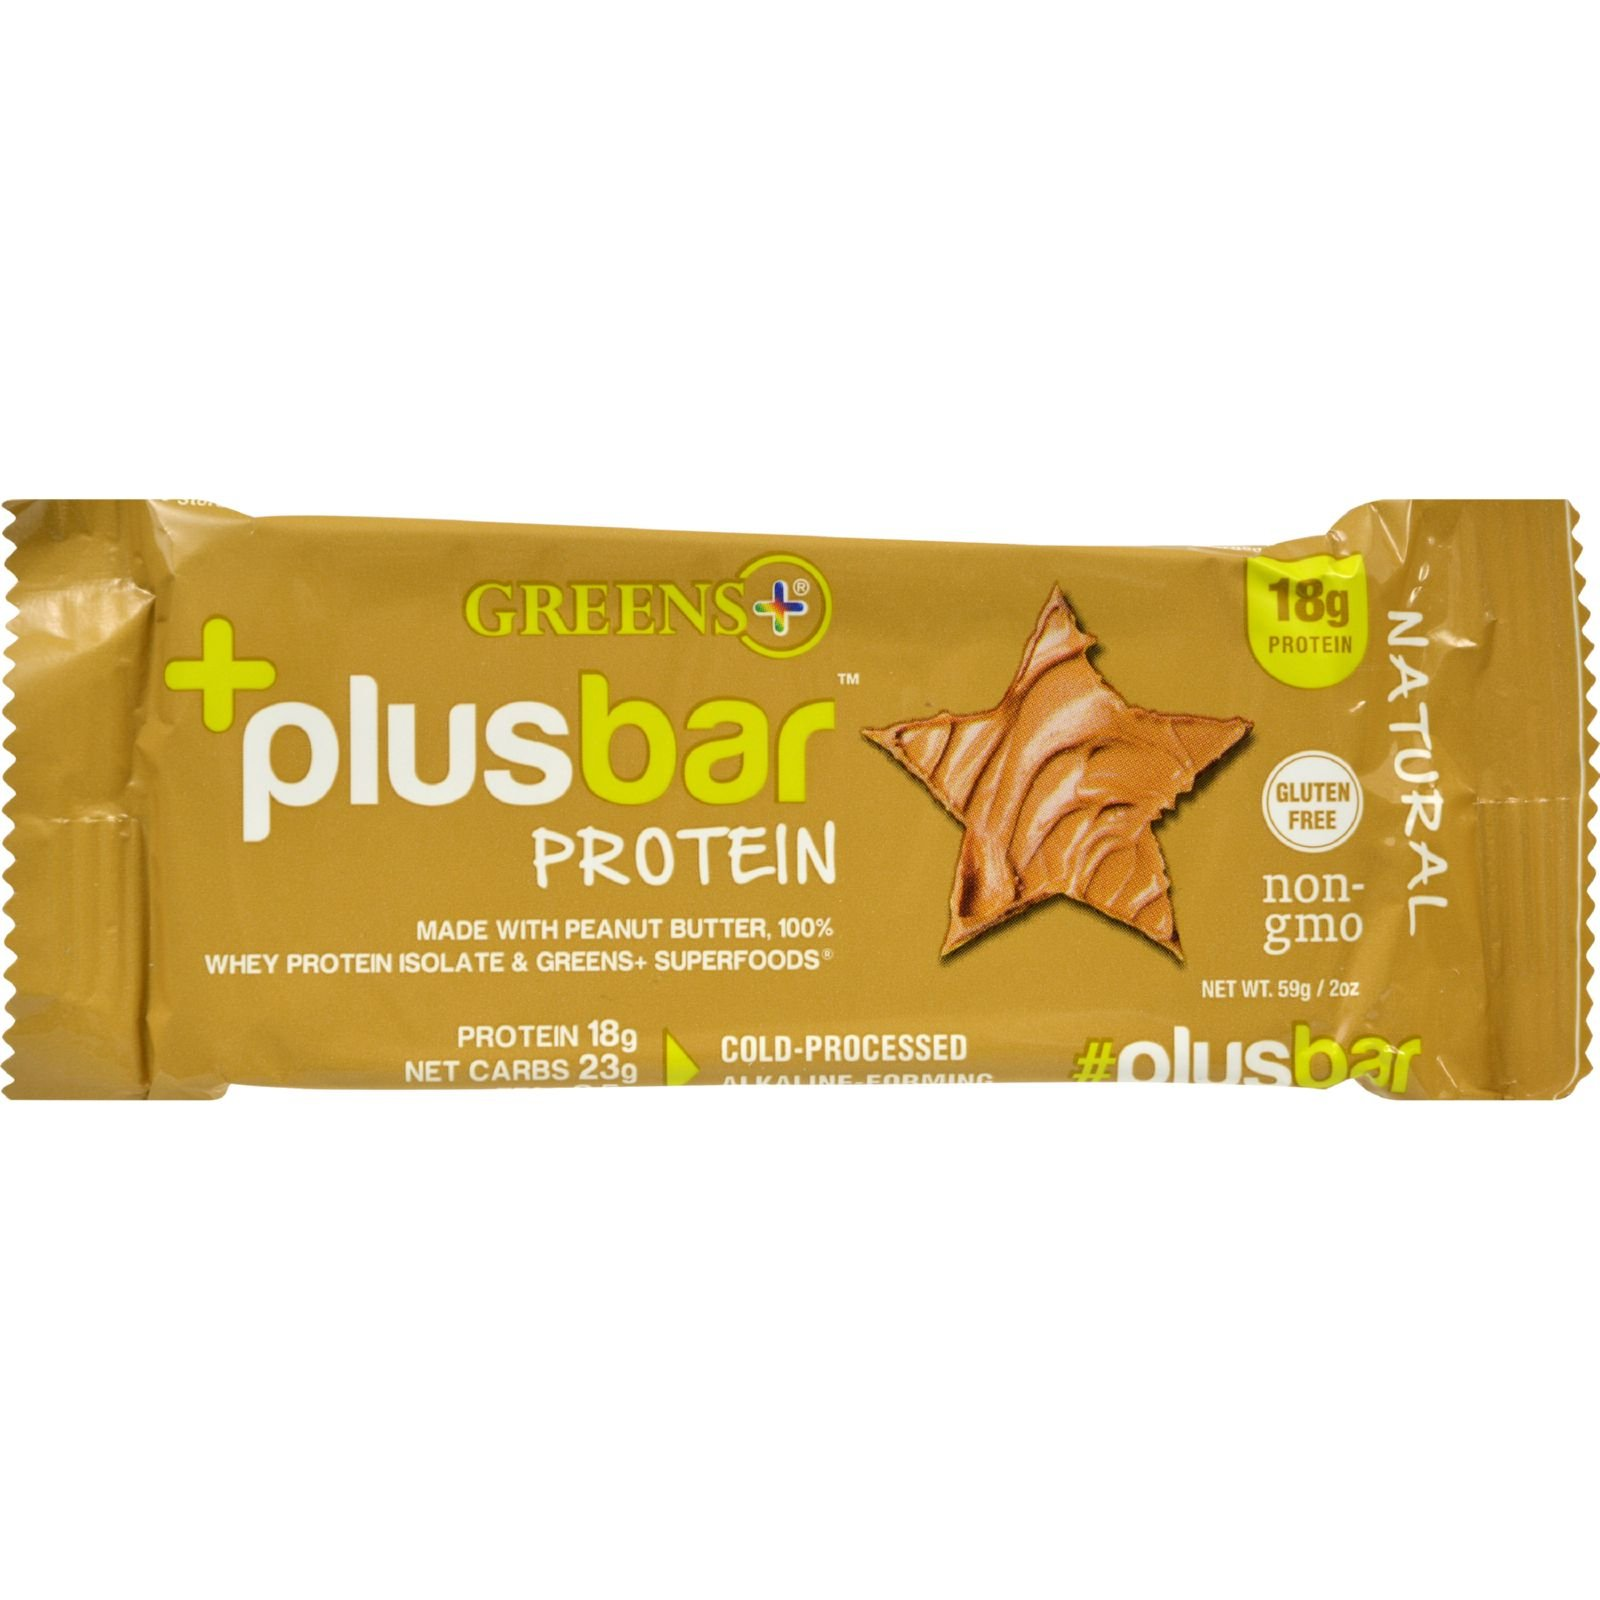 2Pack! Greens Plus Protein Bar - Natural - 2.08 oz - Case of 12